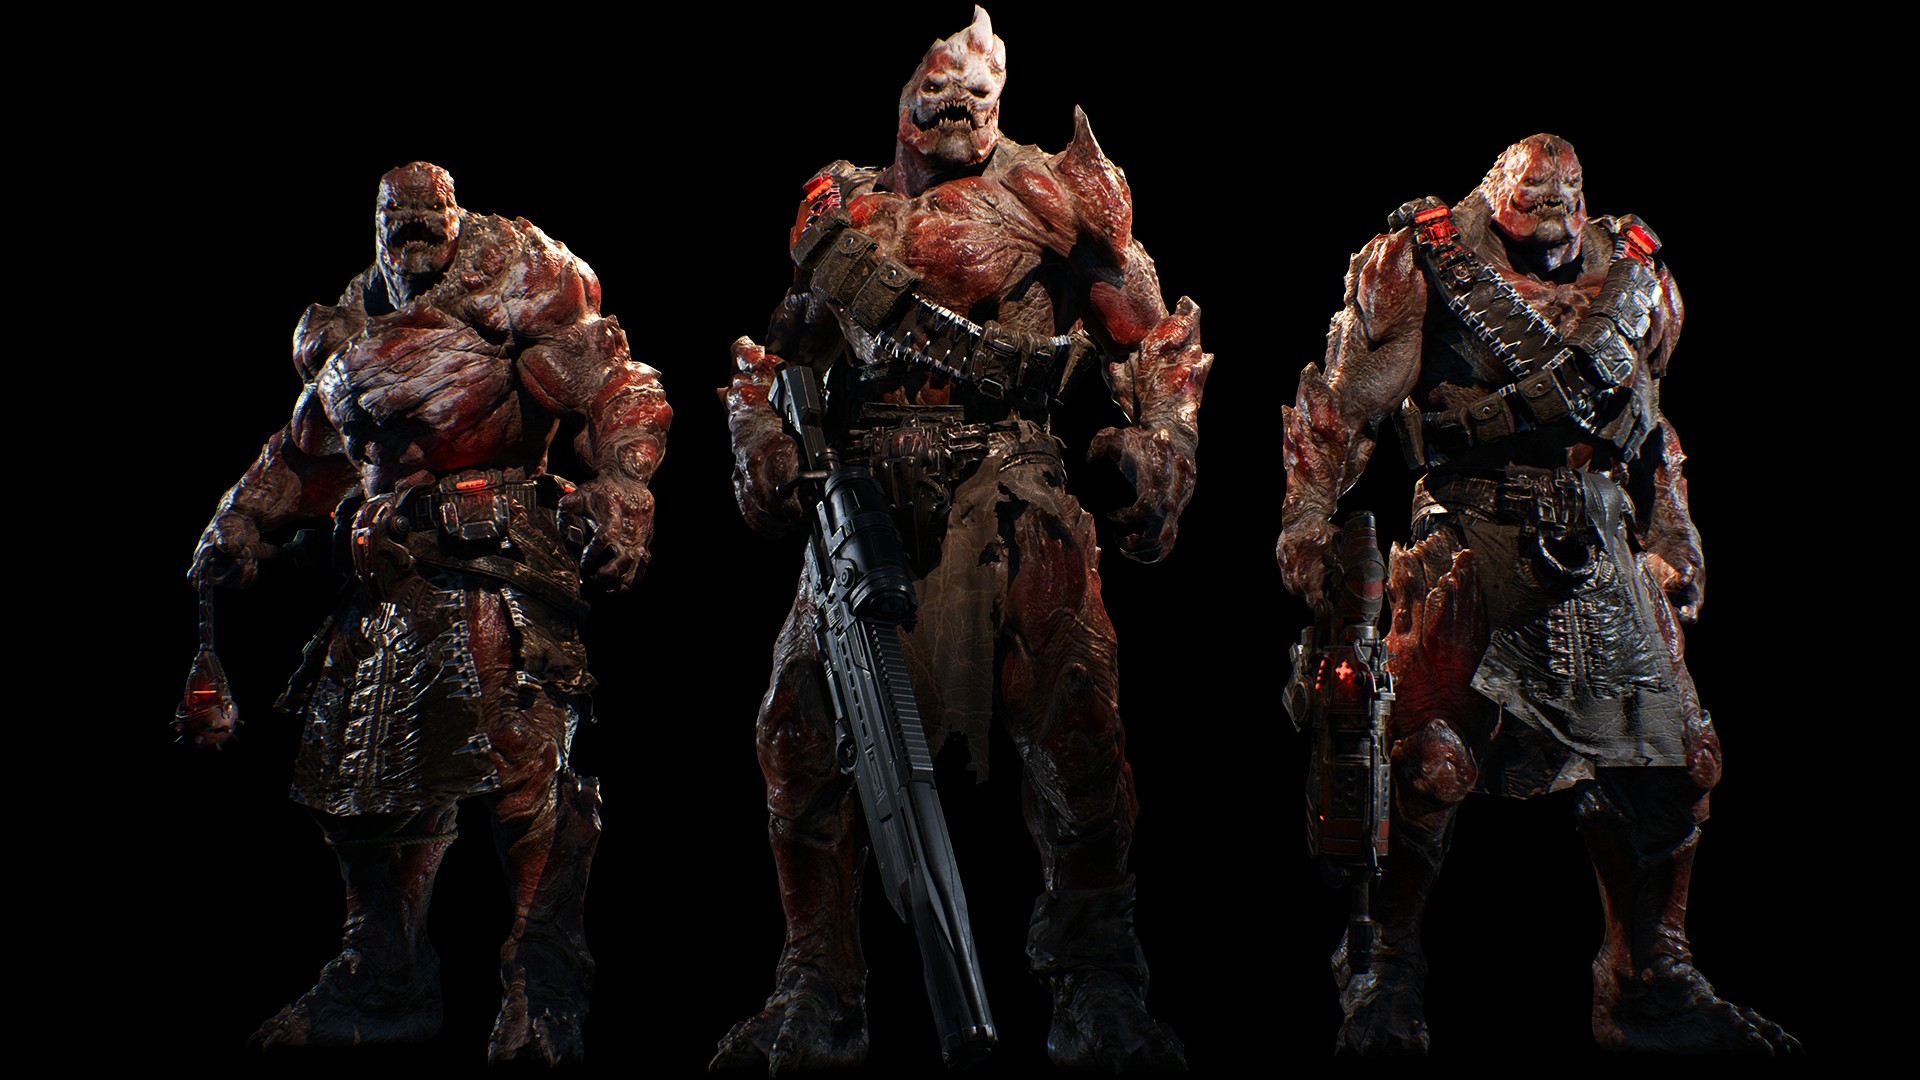 gears of war Find product information, ratings and reviews for gears of war 4 xbox one online on targetcom.